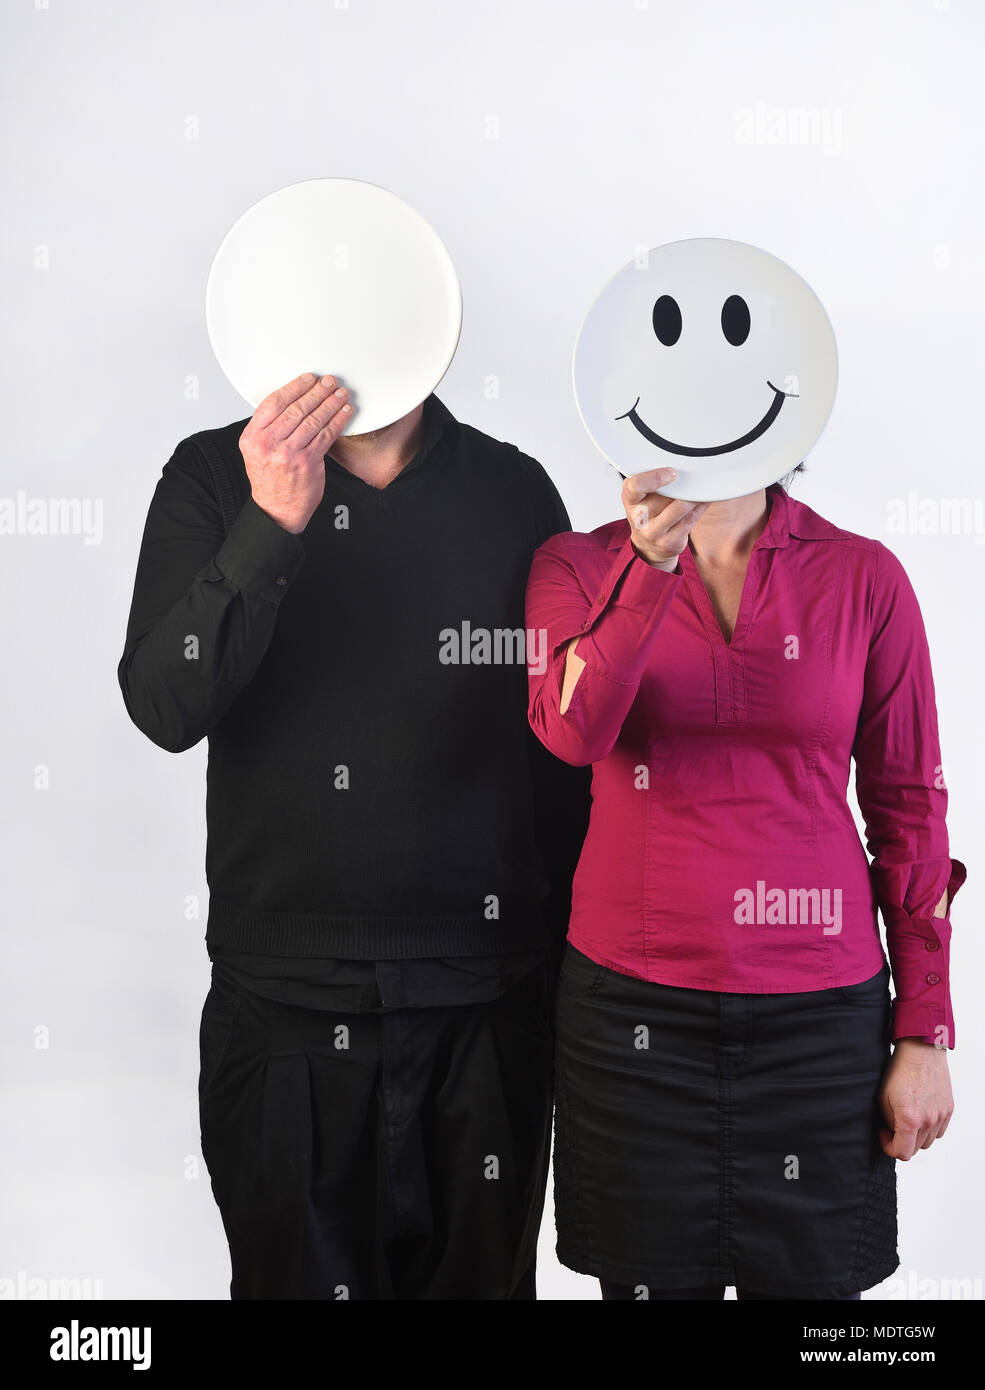 a happy woman and a deadpan man - Stock Image